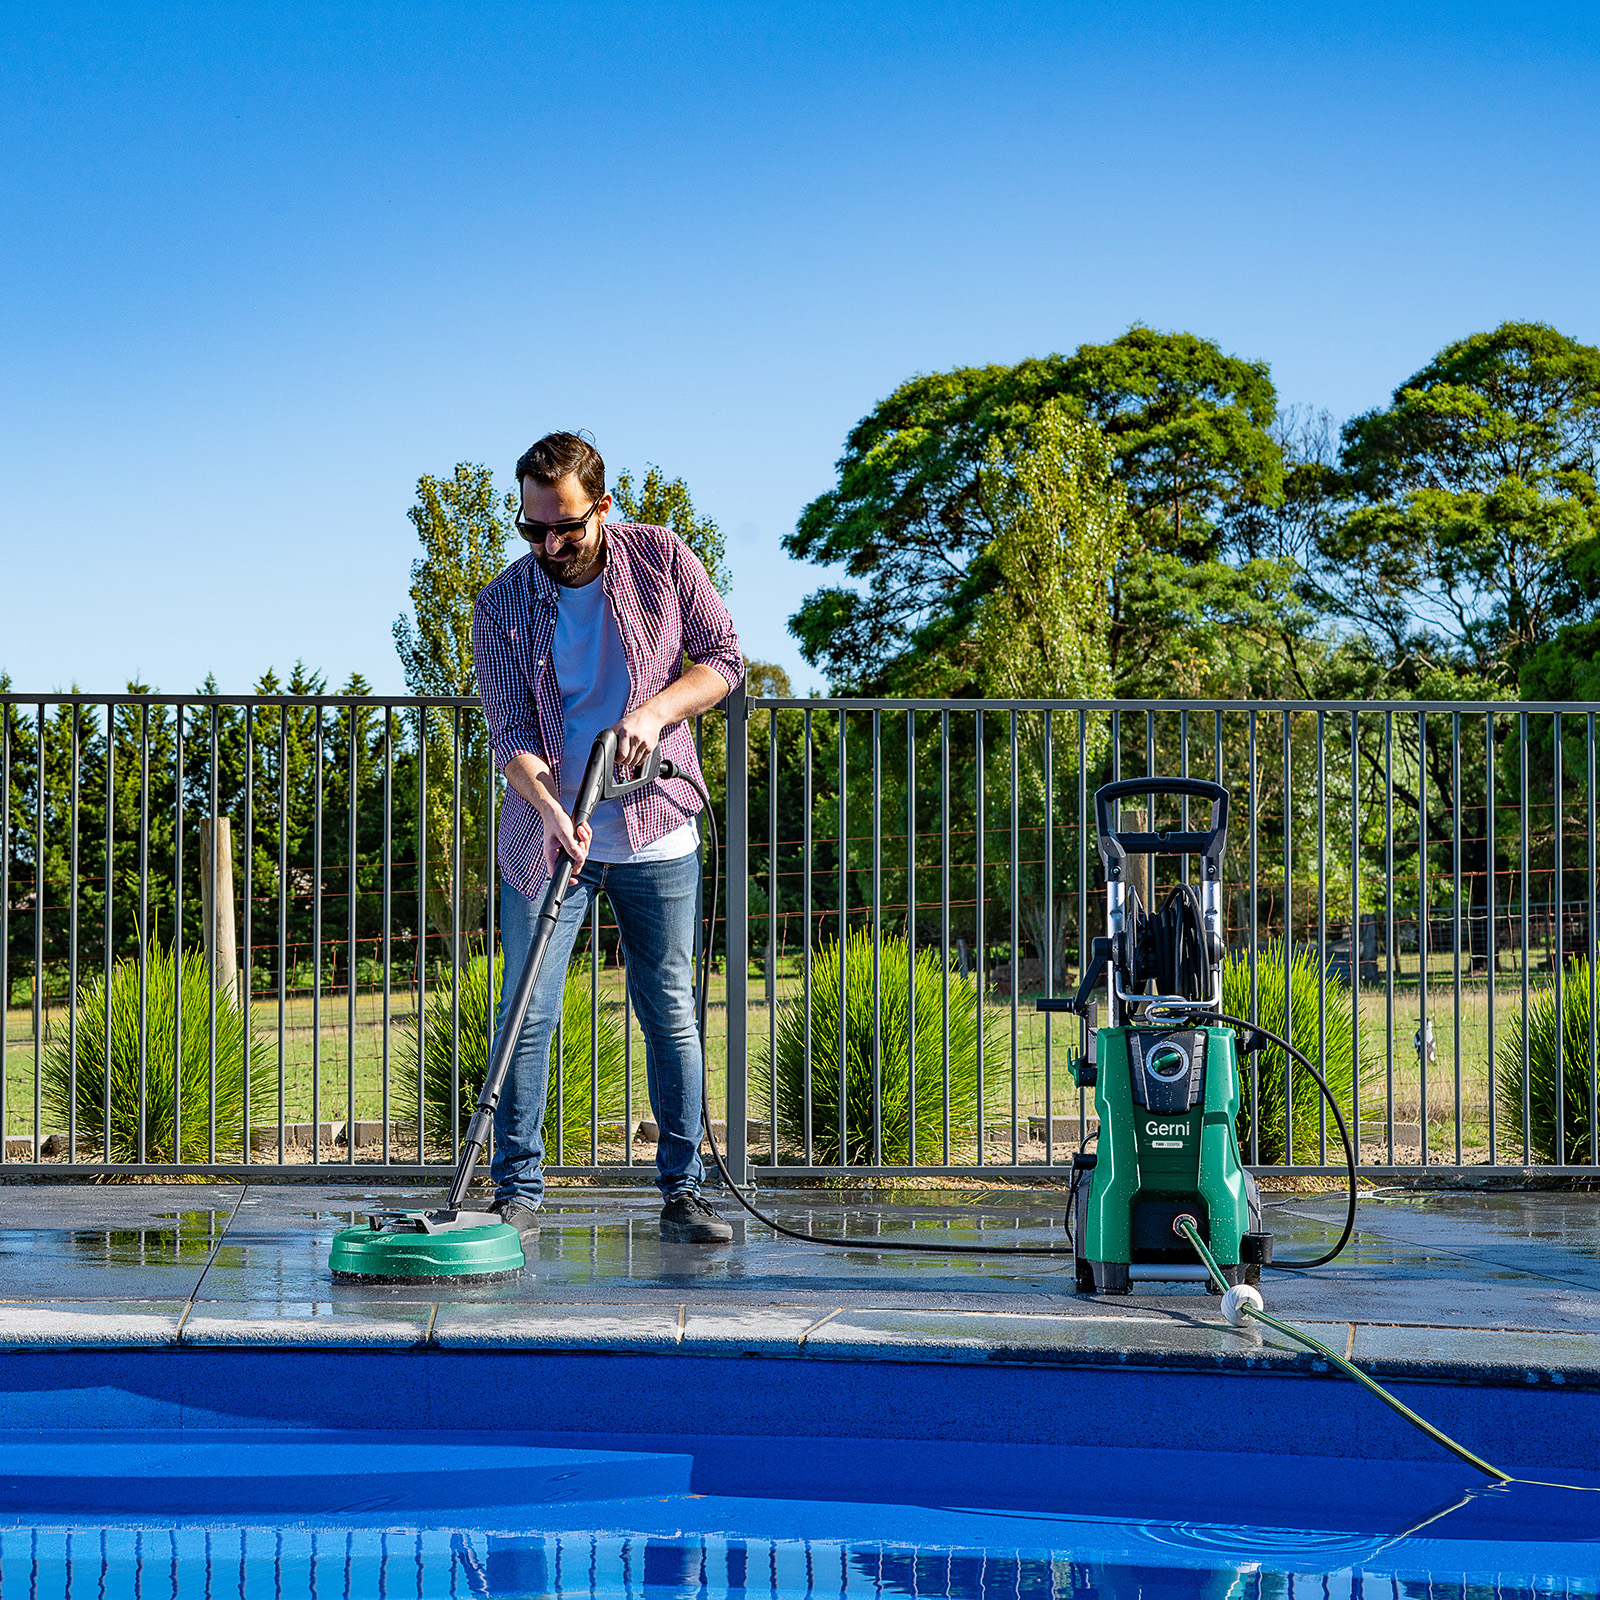 Gerni 7300 - Power Patio Cleaner - Pool Area